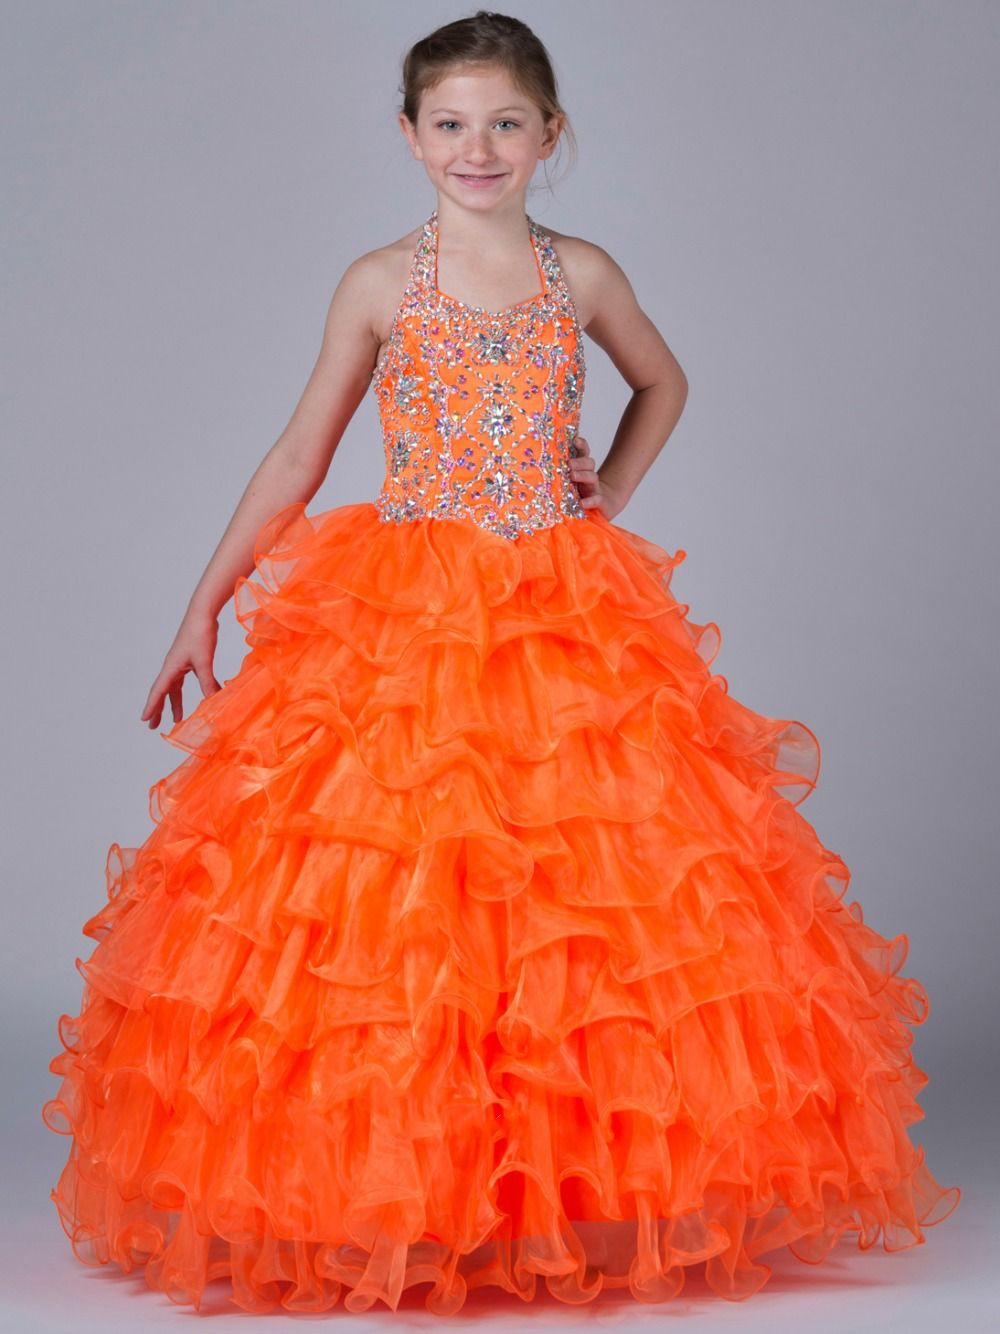 Dresses For 12 Year Old Girls in 2020 Girls formal